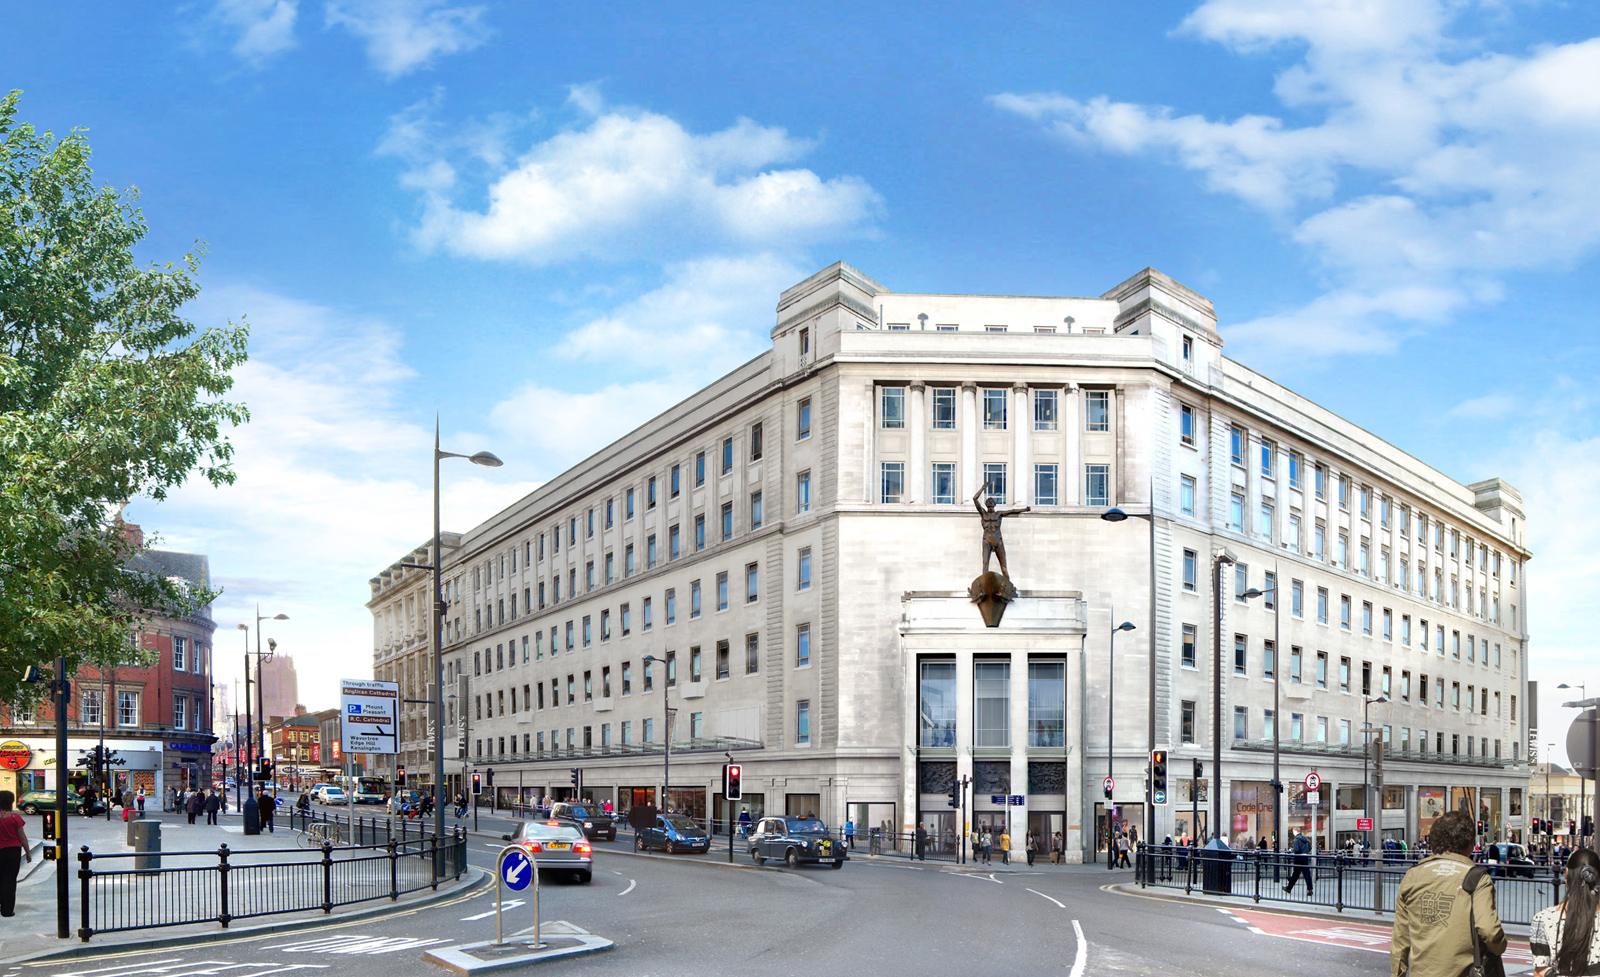 Lewis's Department store is now know as The Department, part of the Central Village scheme. Courtesy of Merepark